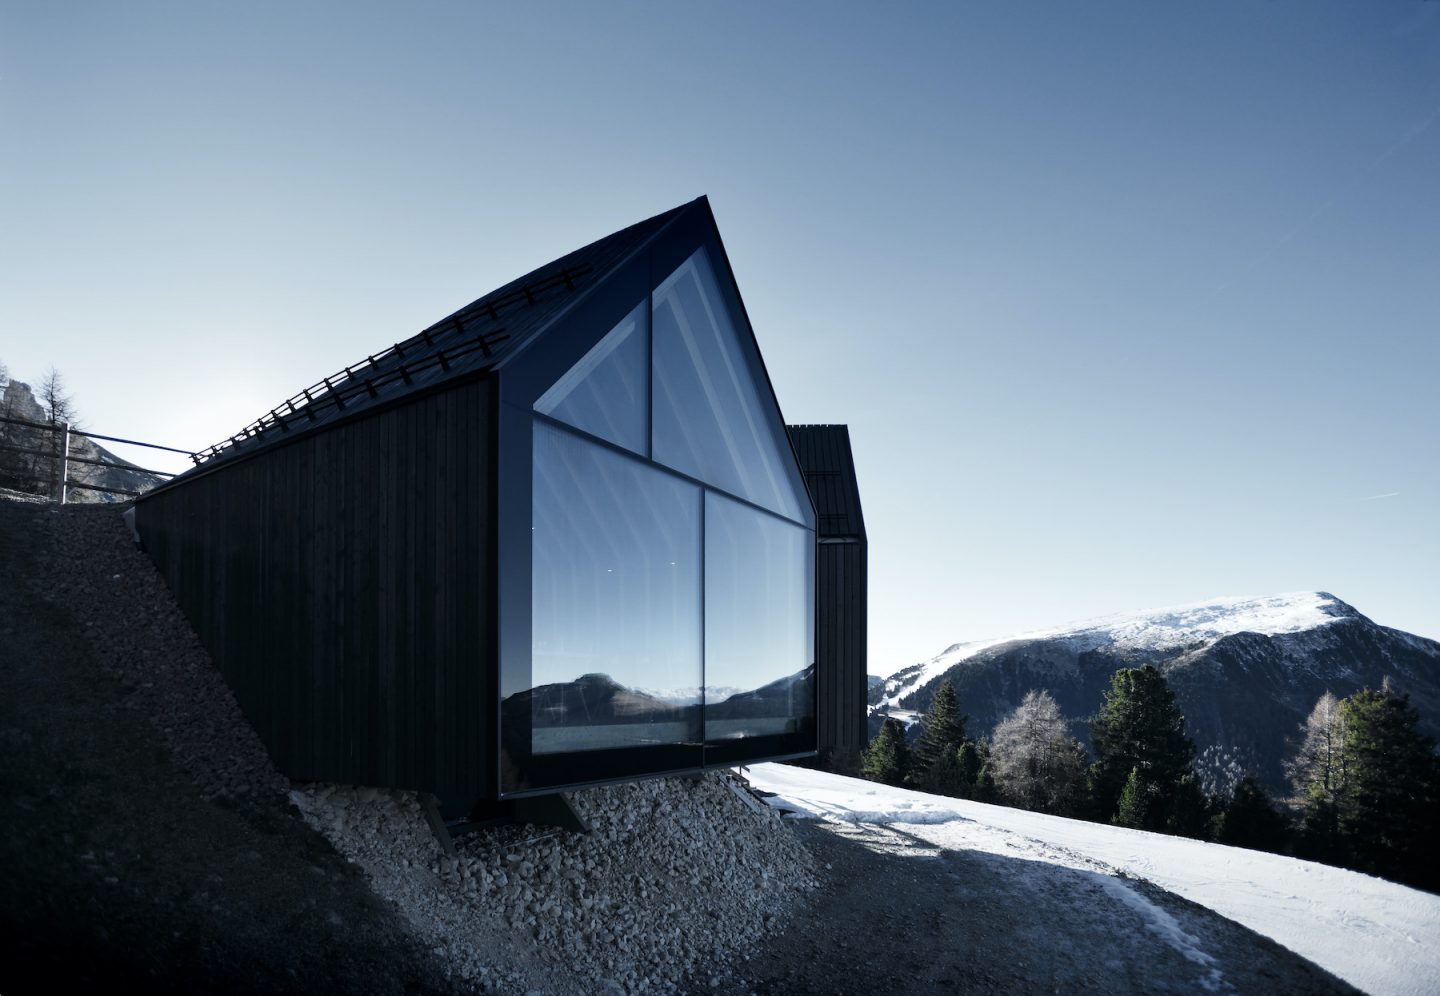 IGNANT-Architecture-South-Tyrol-Peter-Pichler-Oberholz-03